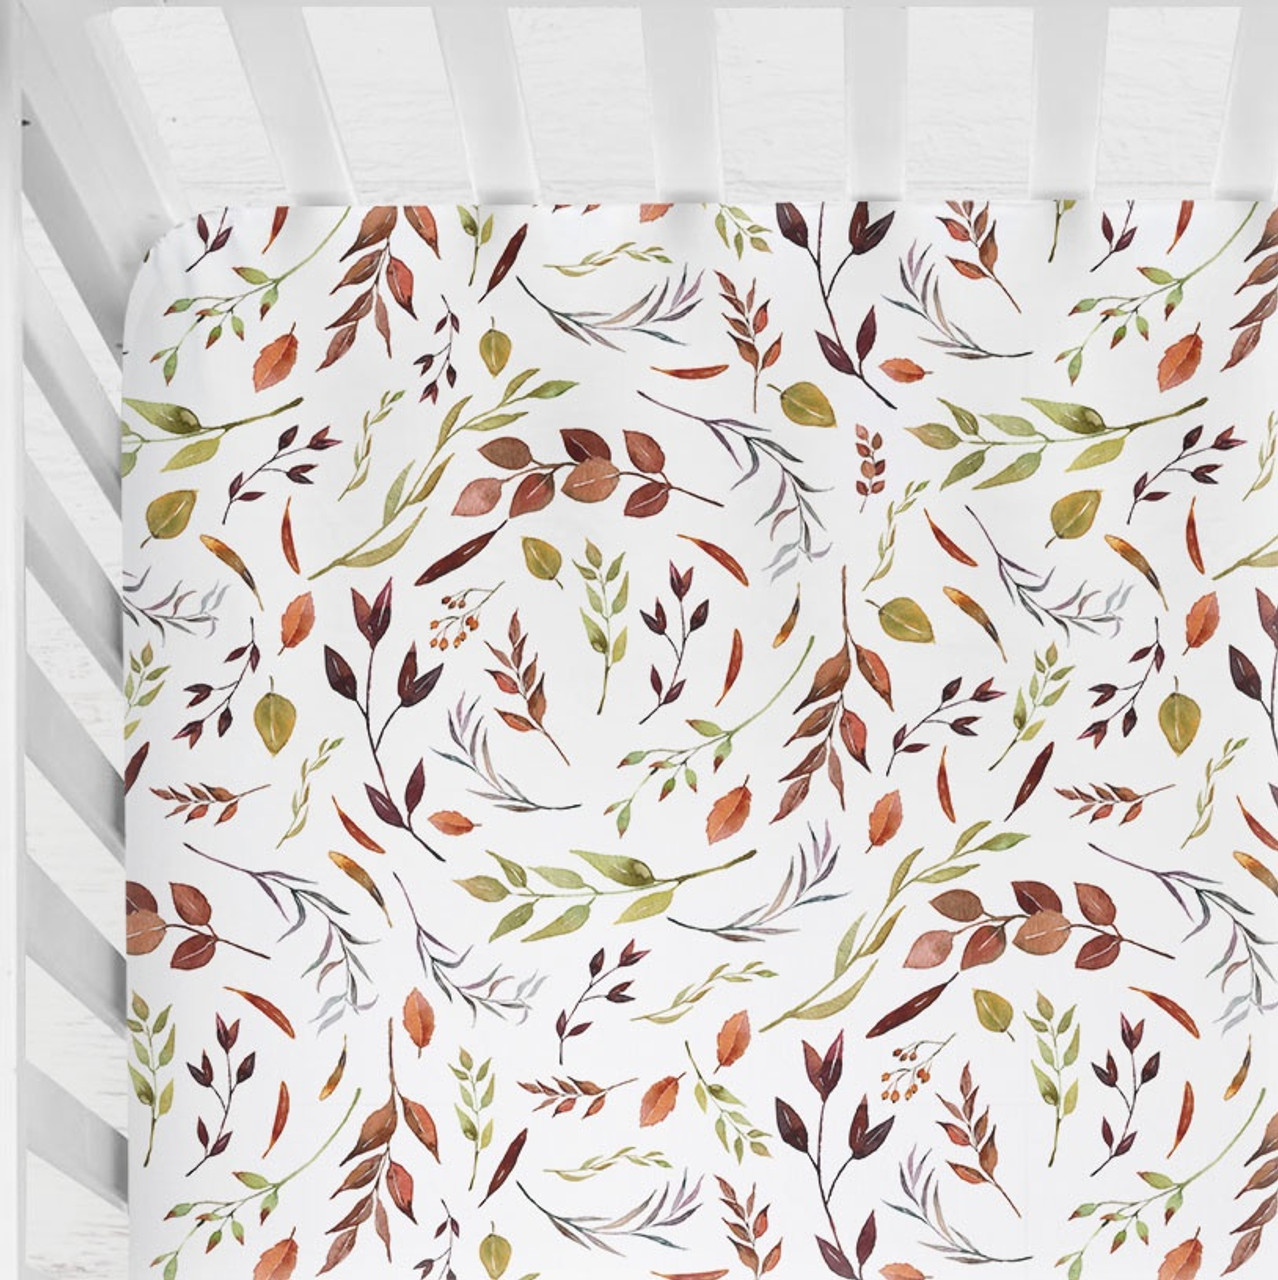 Snuggly Jacks Cotton Fitted Cot Sheet | Baby Barn Discounts Snuggly Jacks cot sheets are made from 100% cotton fabric ensuring the safety of your sleeping baby.